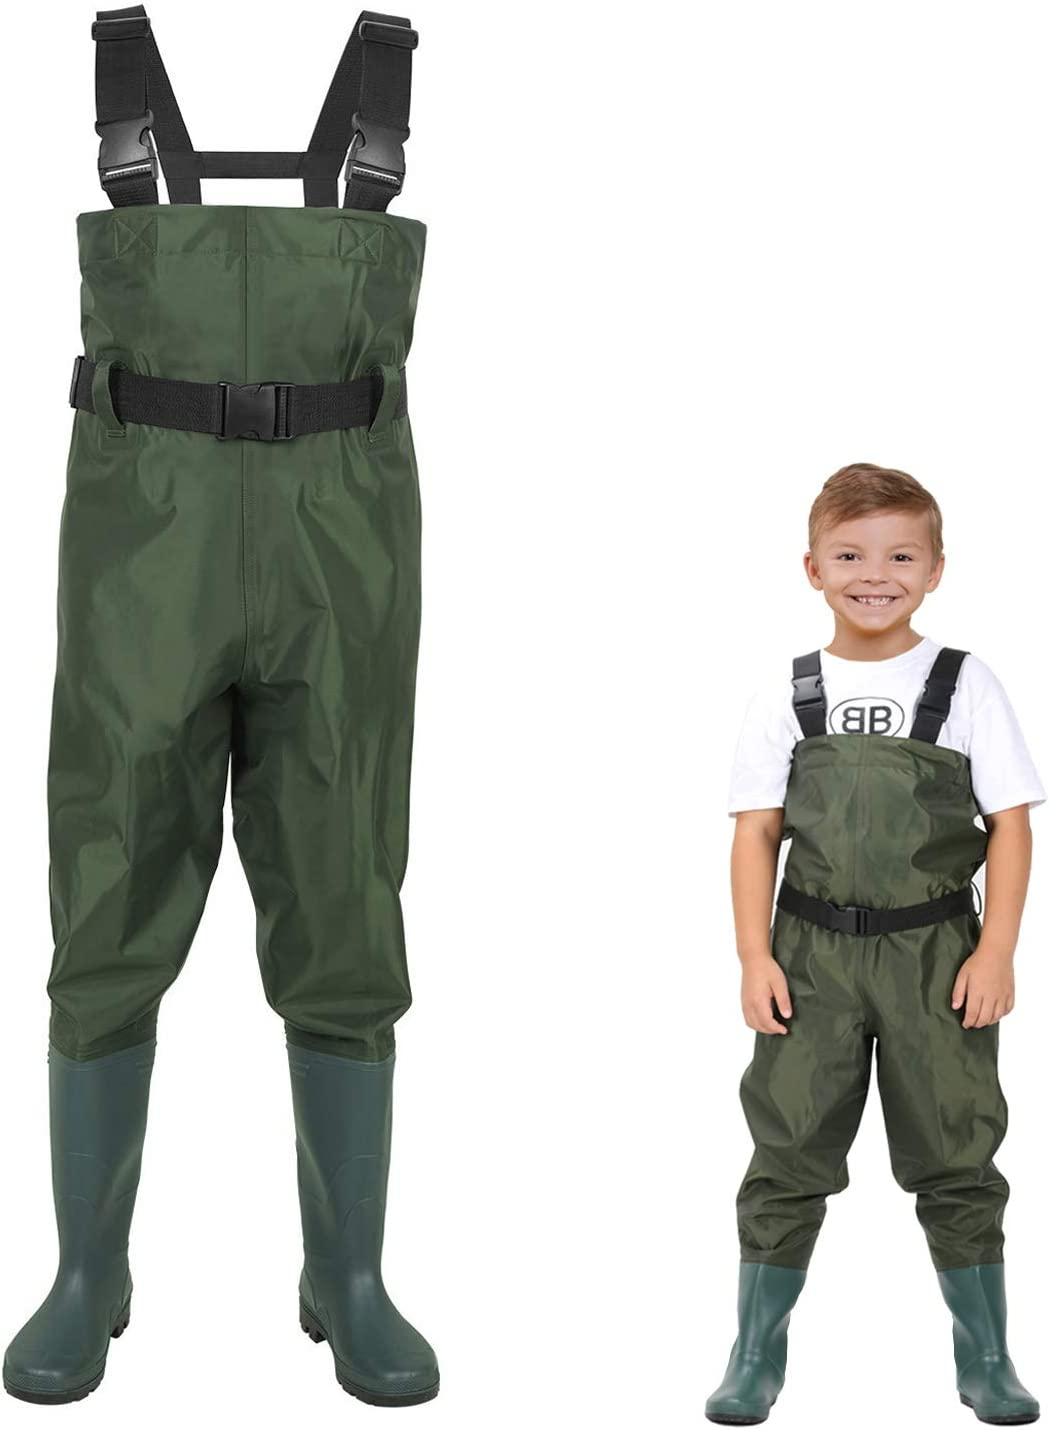 LANGXUN Hip Waders for Kids, Lightweight and Breathable PVC Fishing Waders for Children, Waterproof Bootfoot Waders for Boy and Girl, Army Green Chest Waders for Women : Sports & Outdoors